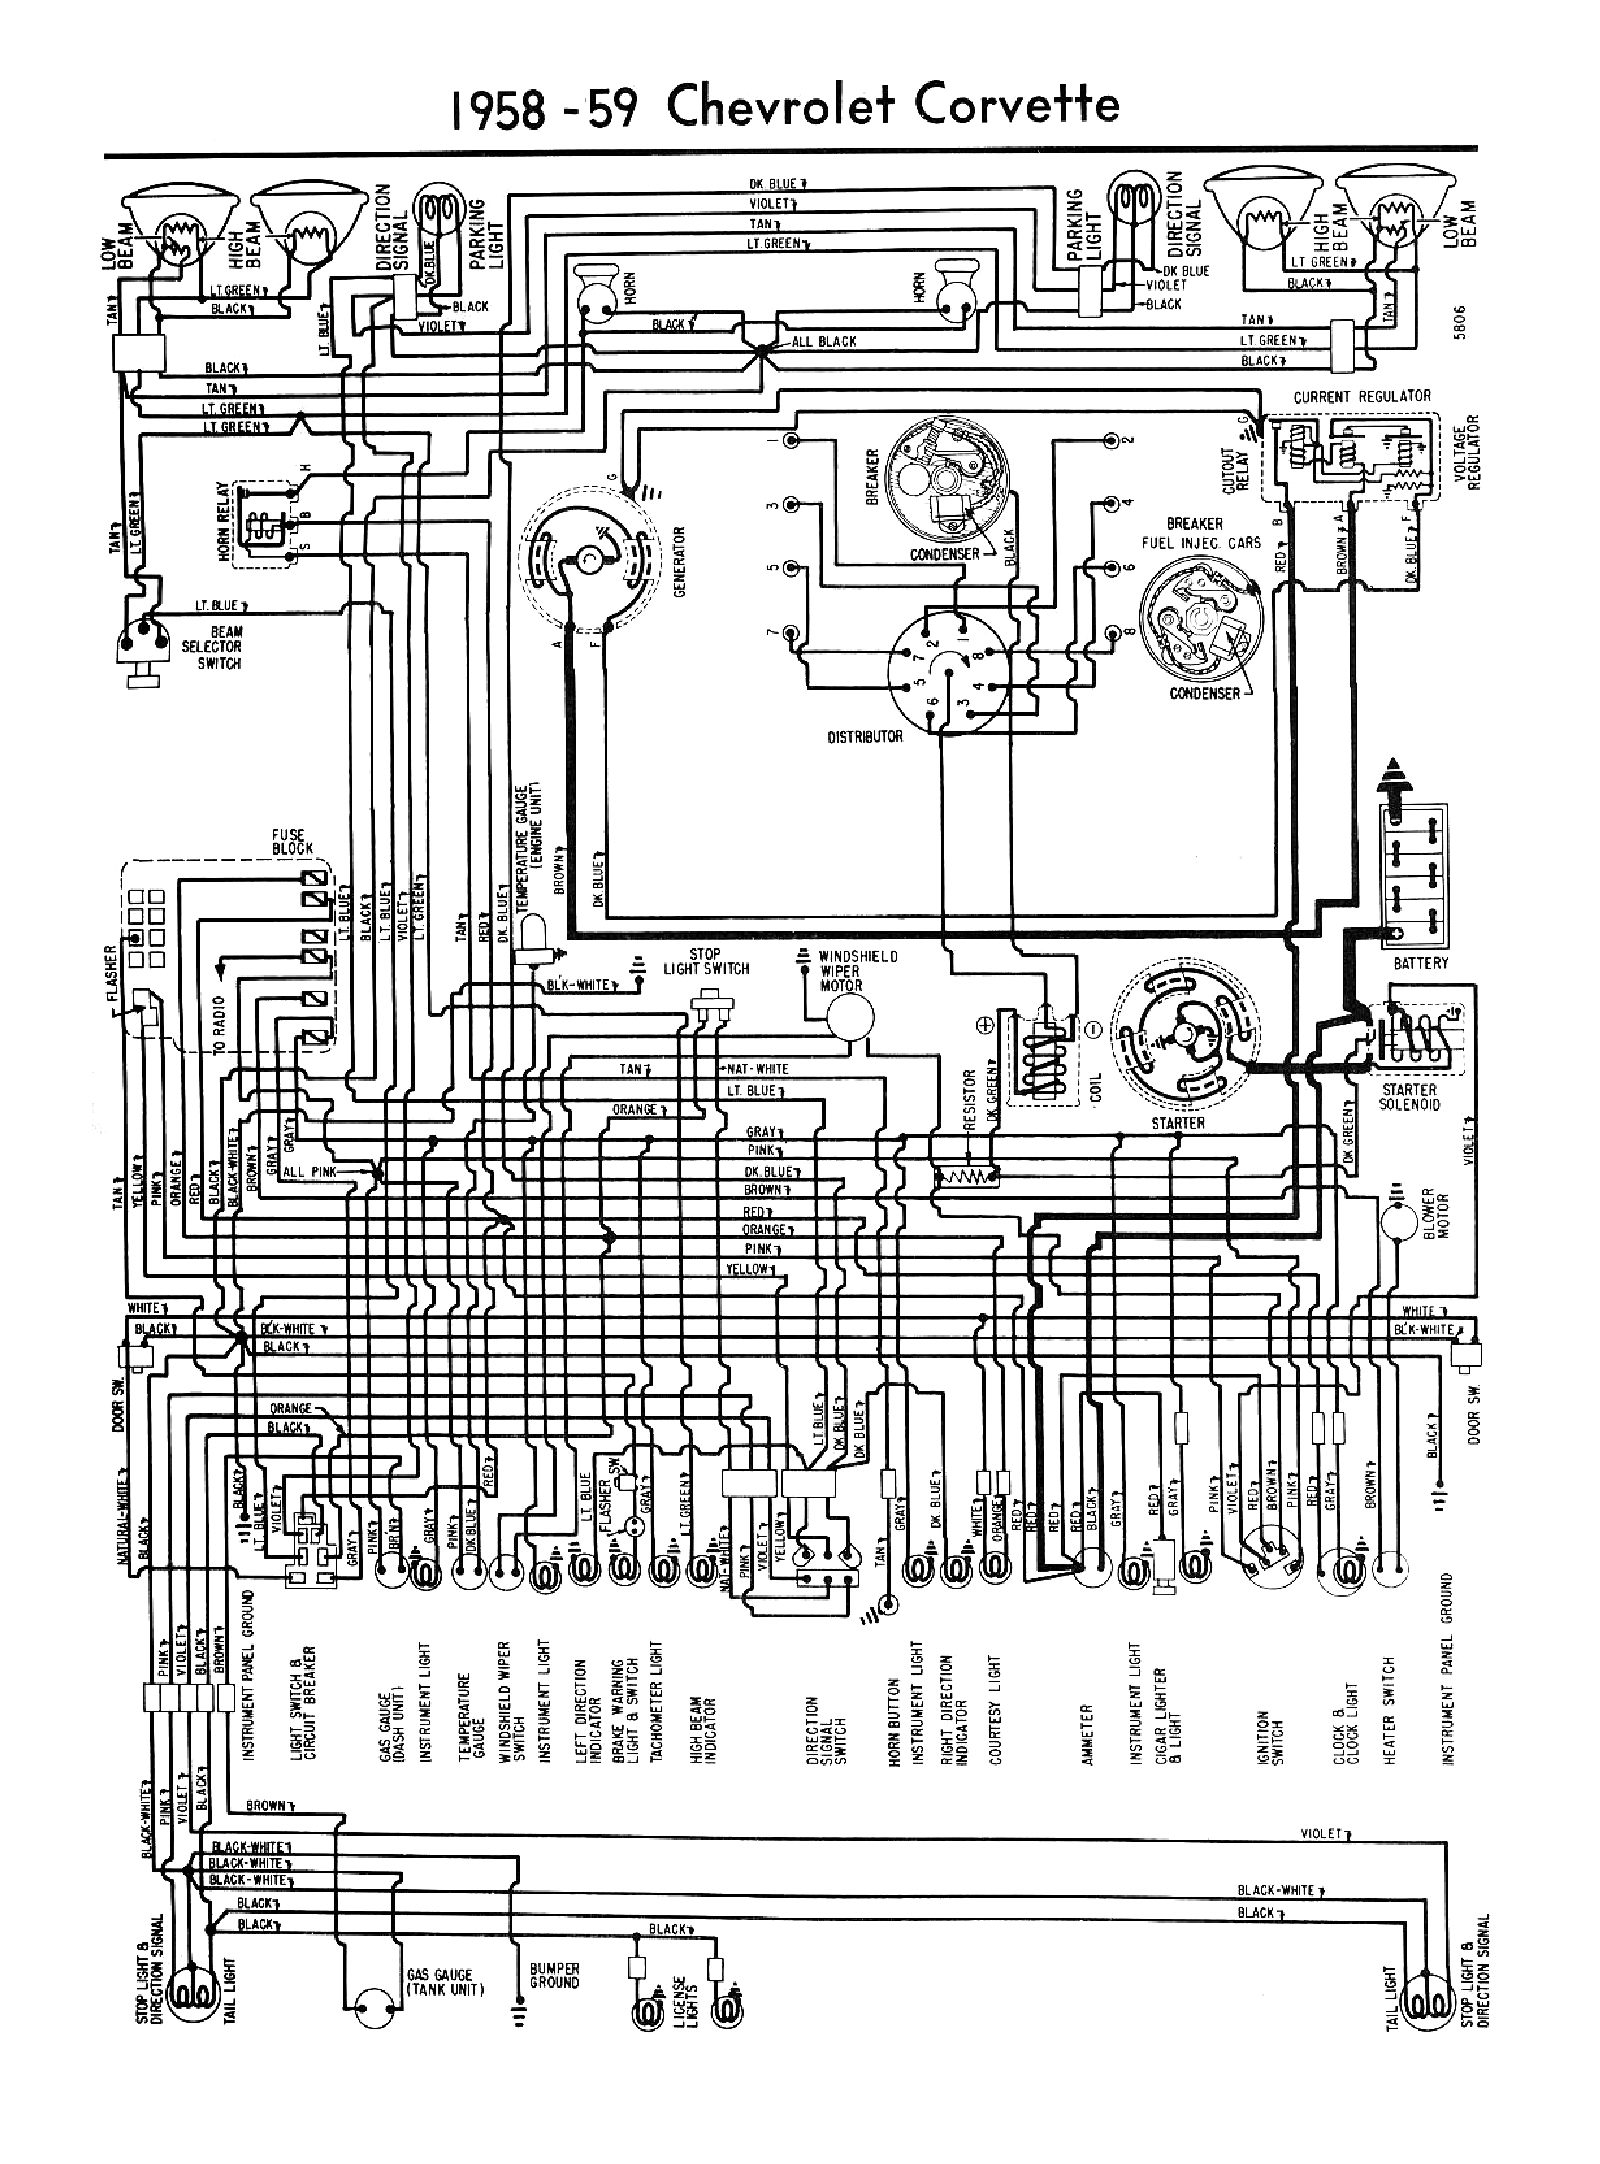 1958 corvette wiring diagram